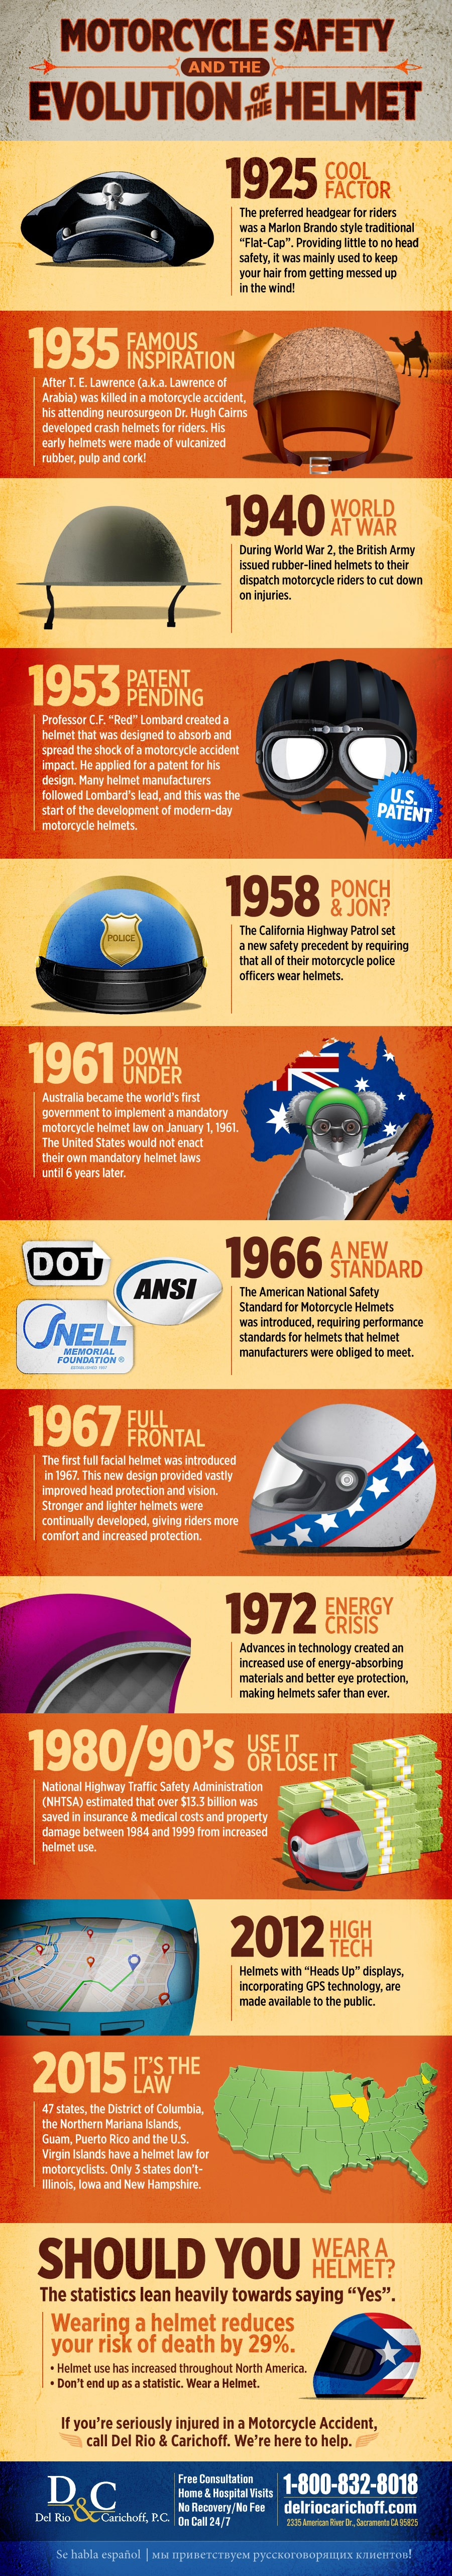 Motorcycle Safety and the Evolution of the Helmet infographic